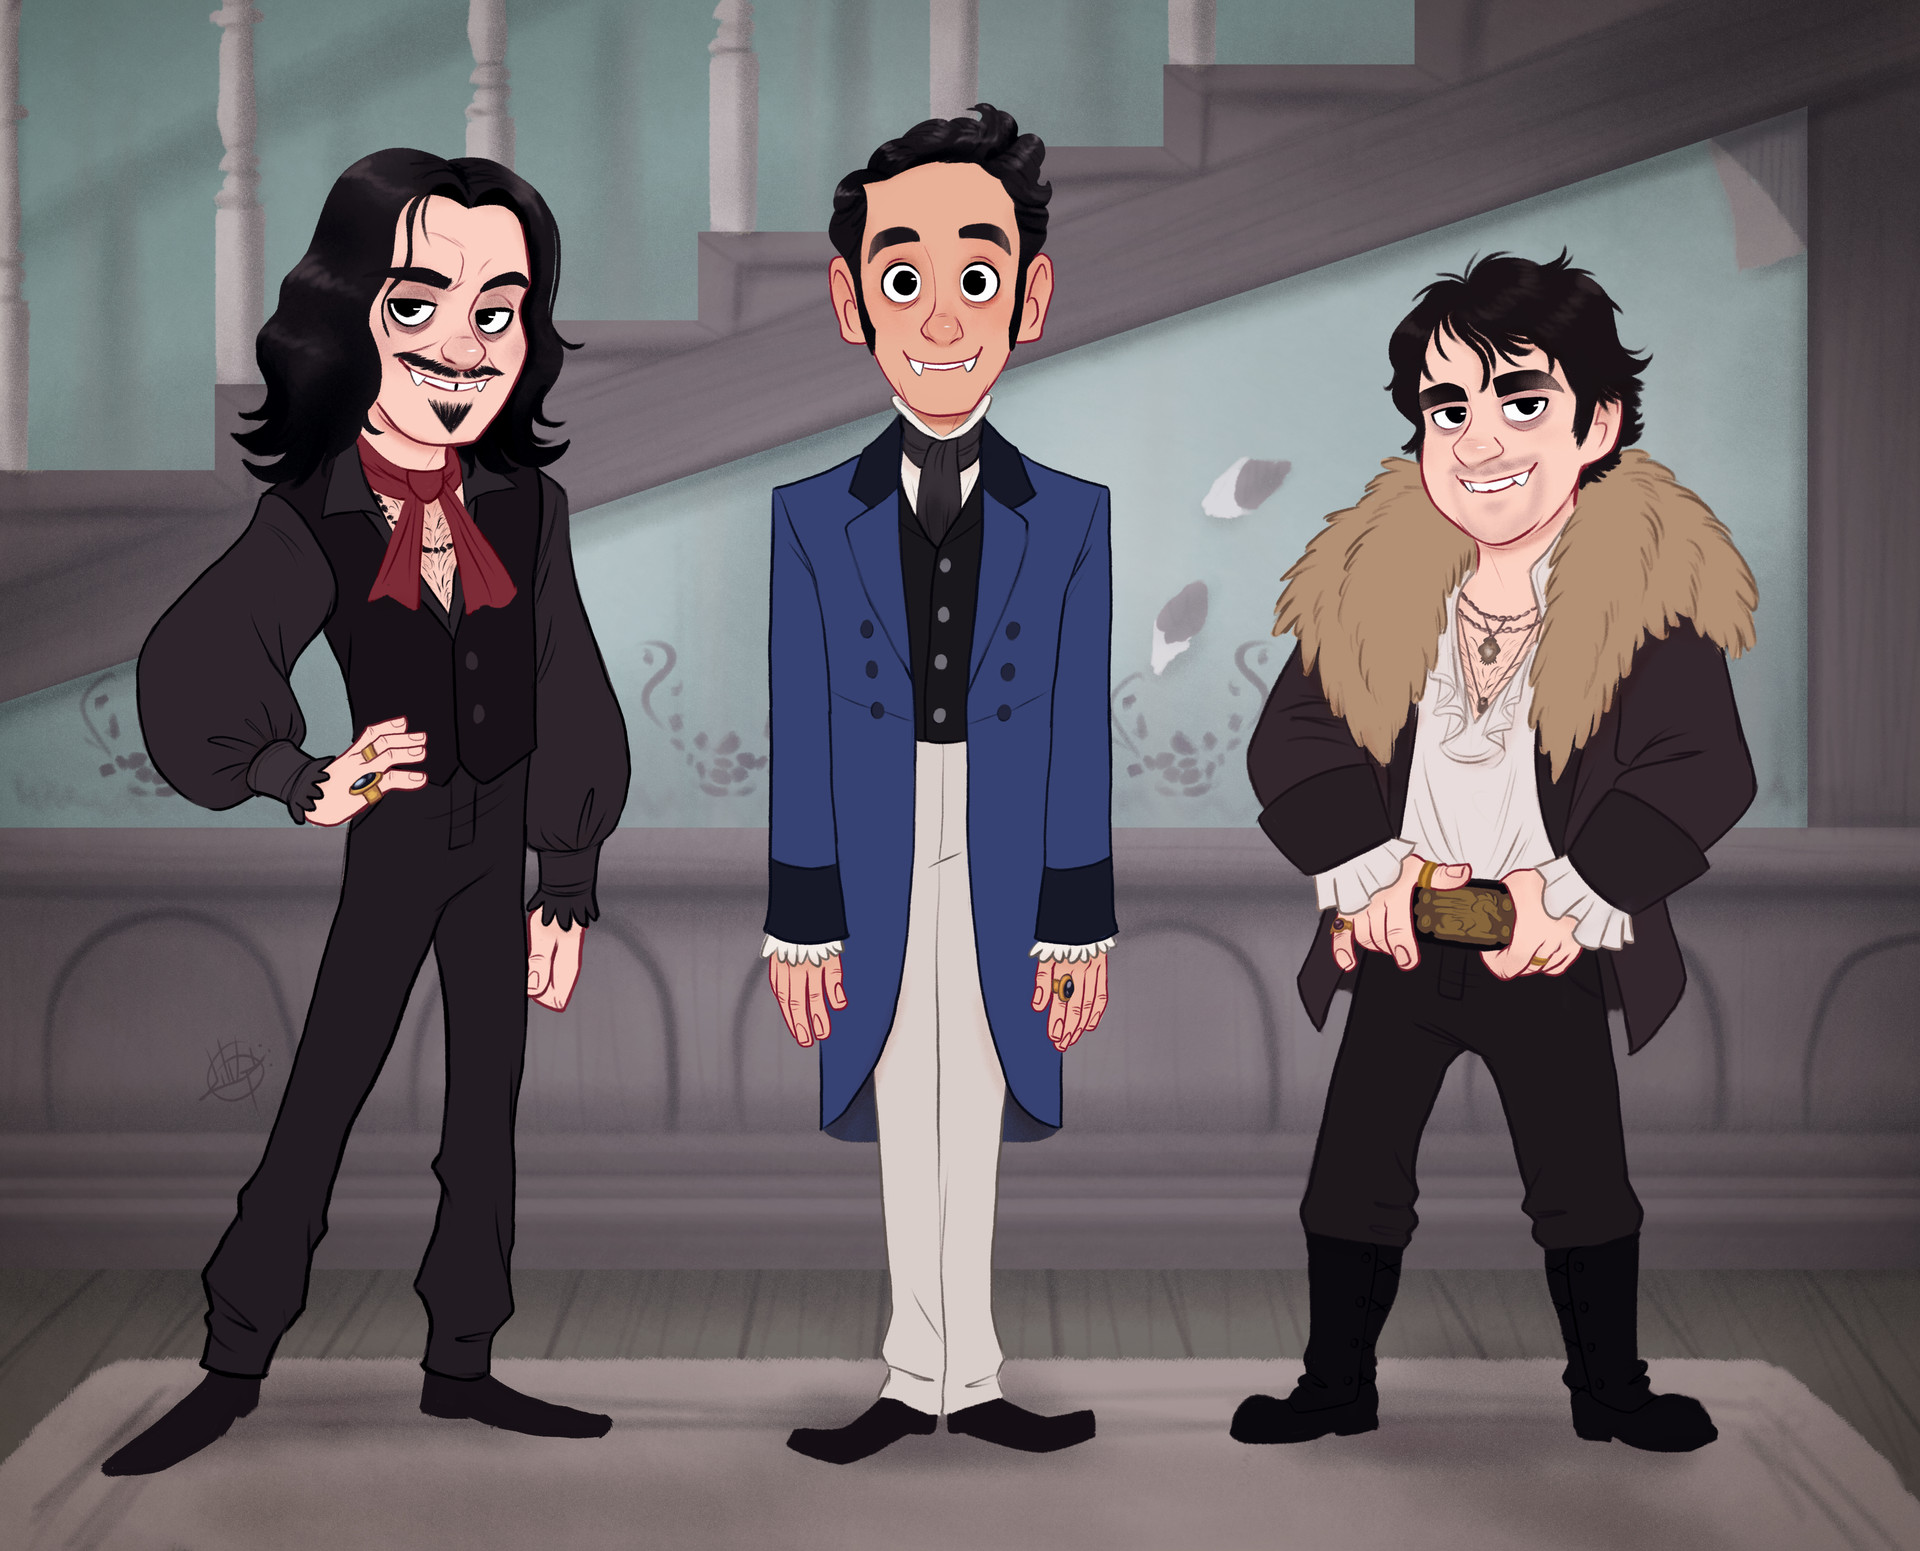 Luigi lucarelli what we do in the shadows 2